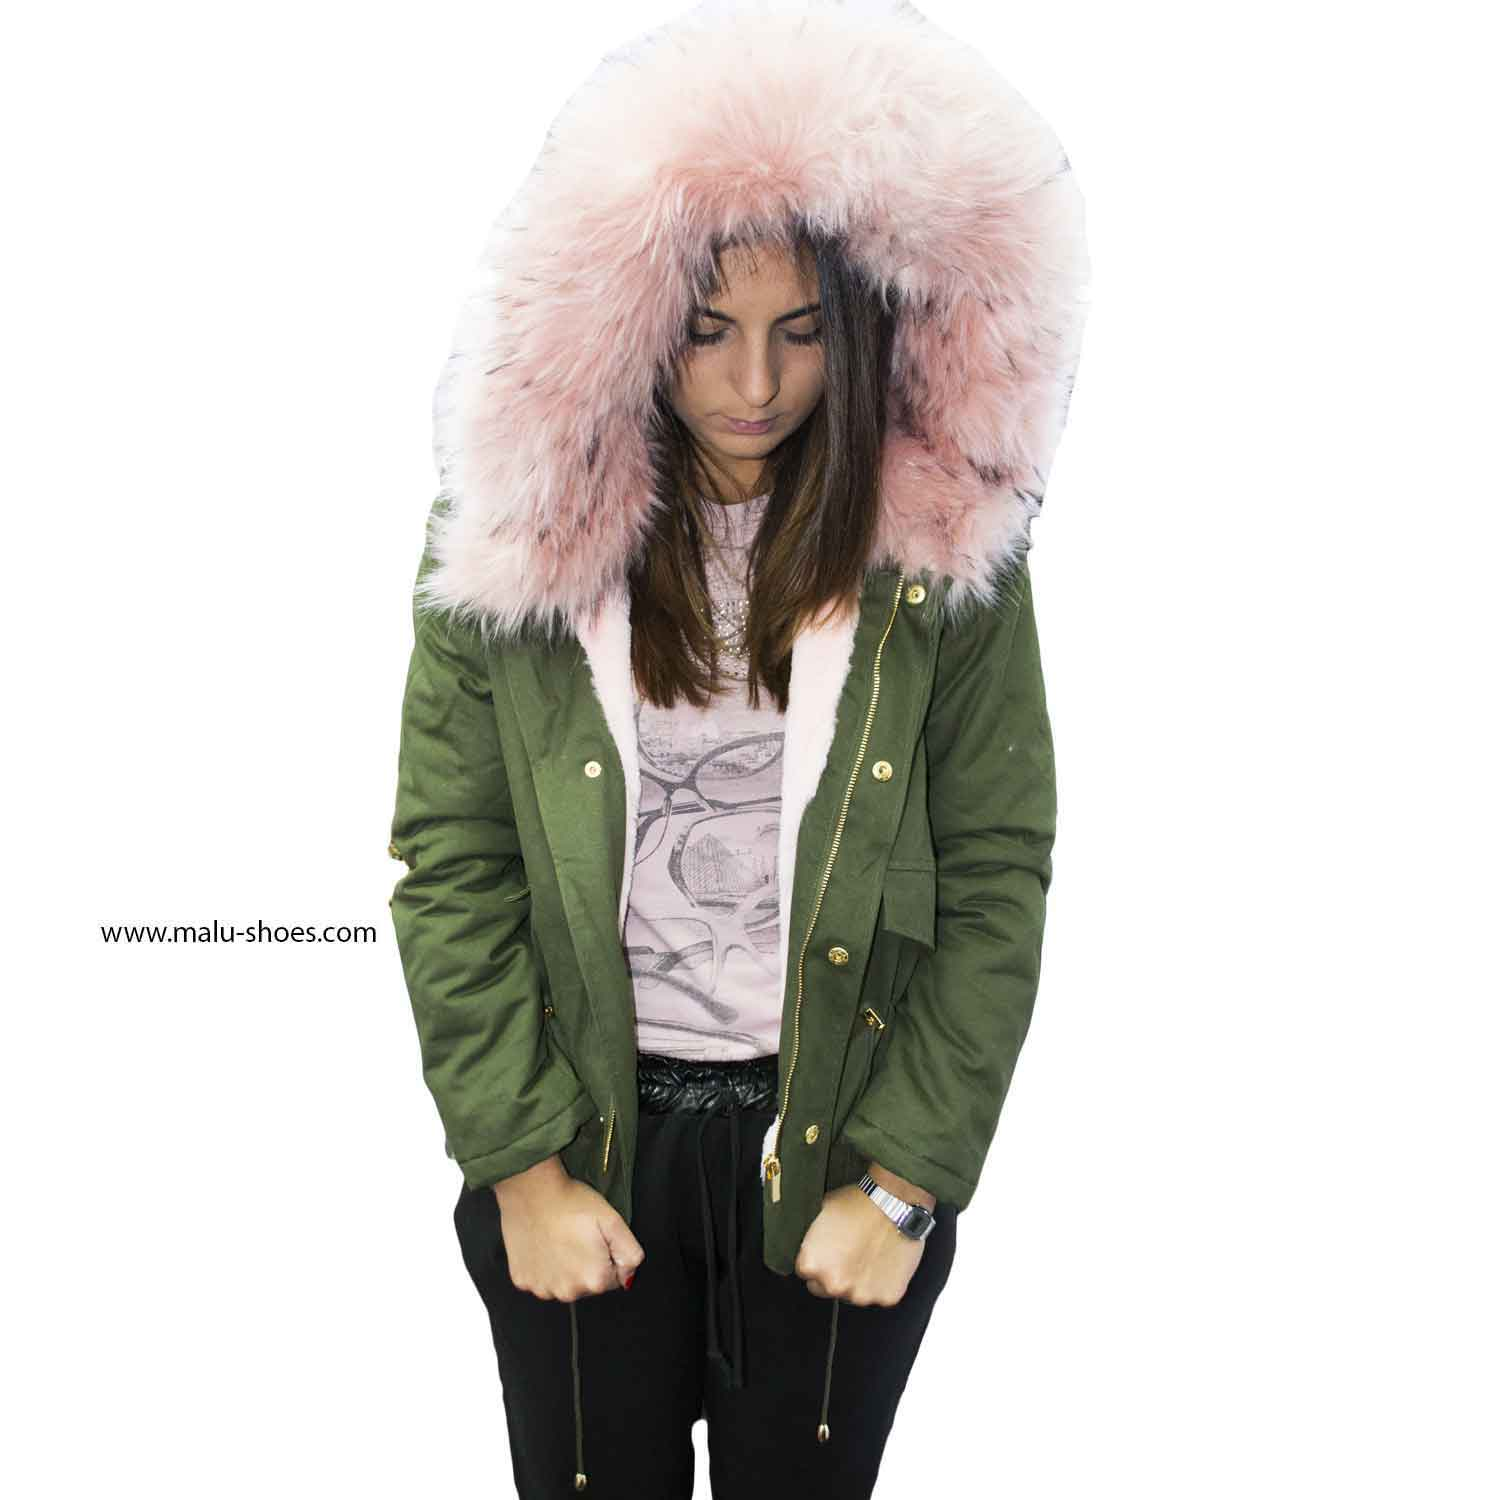 best website 10293 93979 New parka corto verde rosa con pelliccia colorata voluminosa glamour donna  parka k-zell | MaluShoes